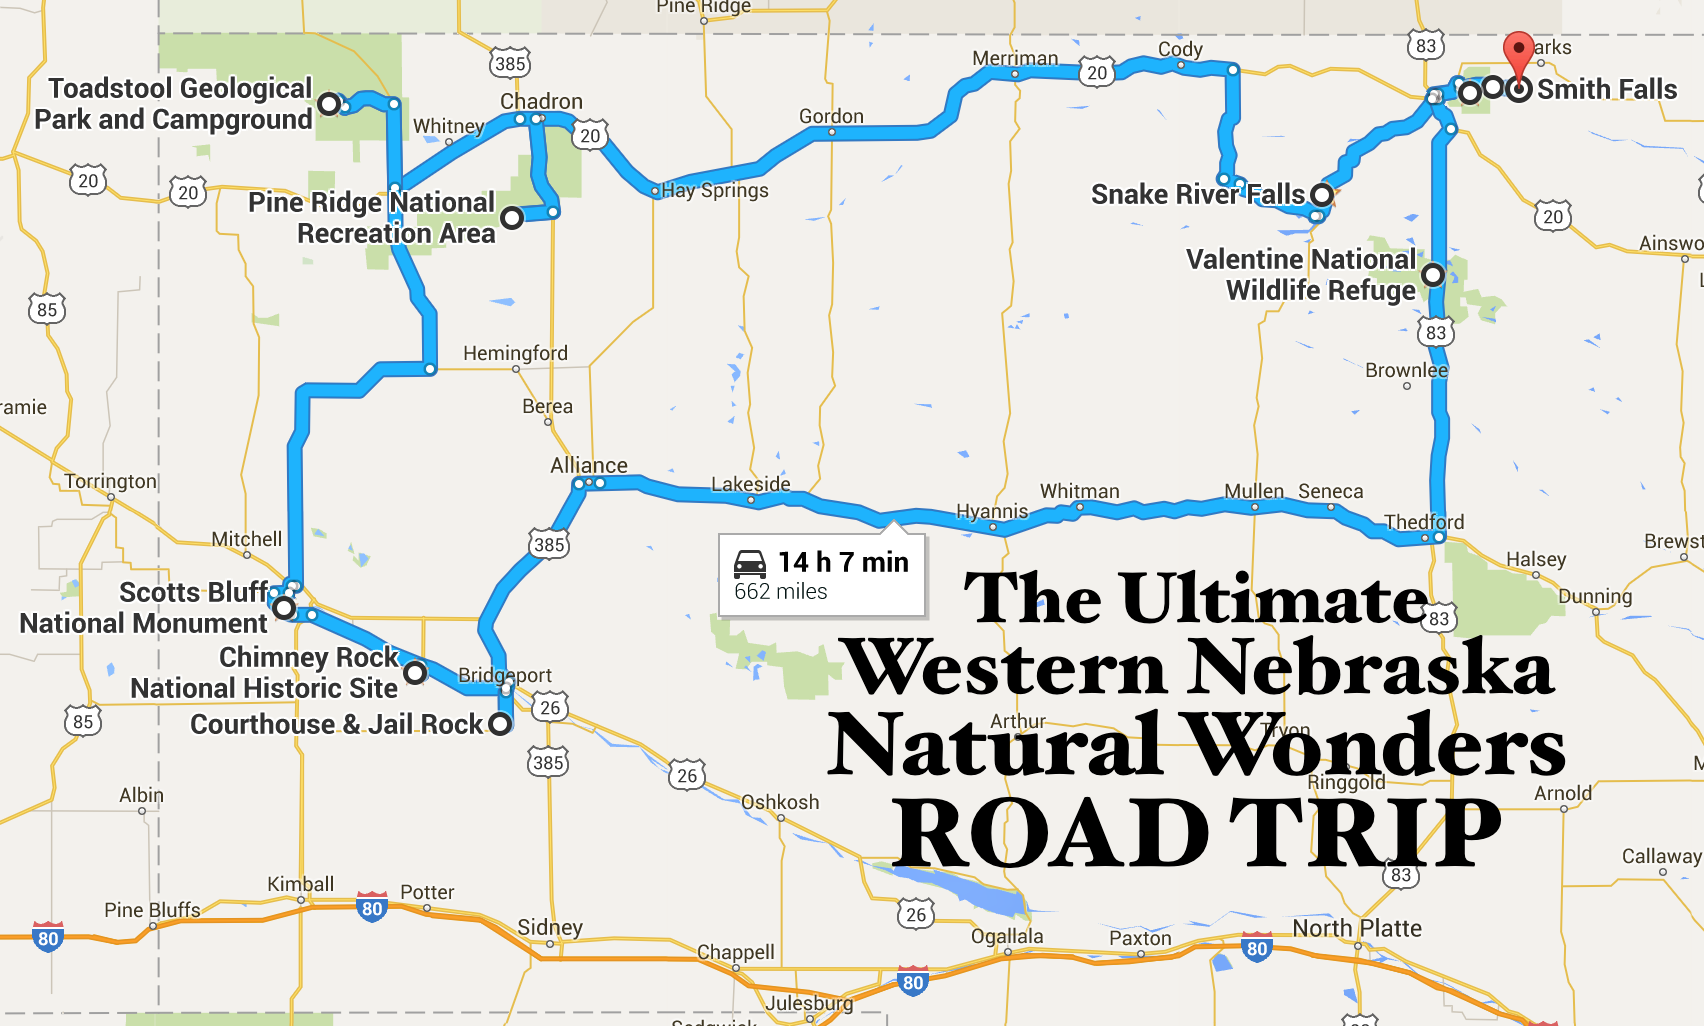 phoenix maryland map with Western Ne Road Trip on Wichita Downtown Map furthermore Lake  o Mt moreover Las Vegas Vdara Hotel Map likewise Virginia Beach Downtown Map moreover Funny Maps Nd.